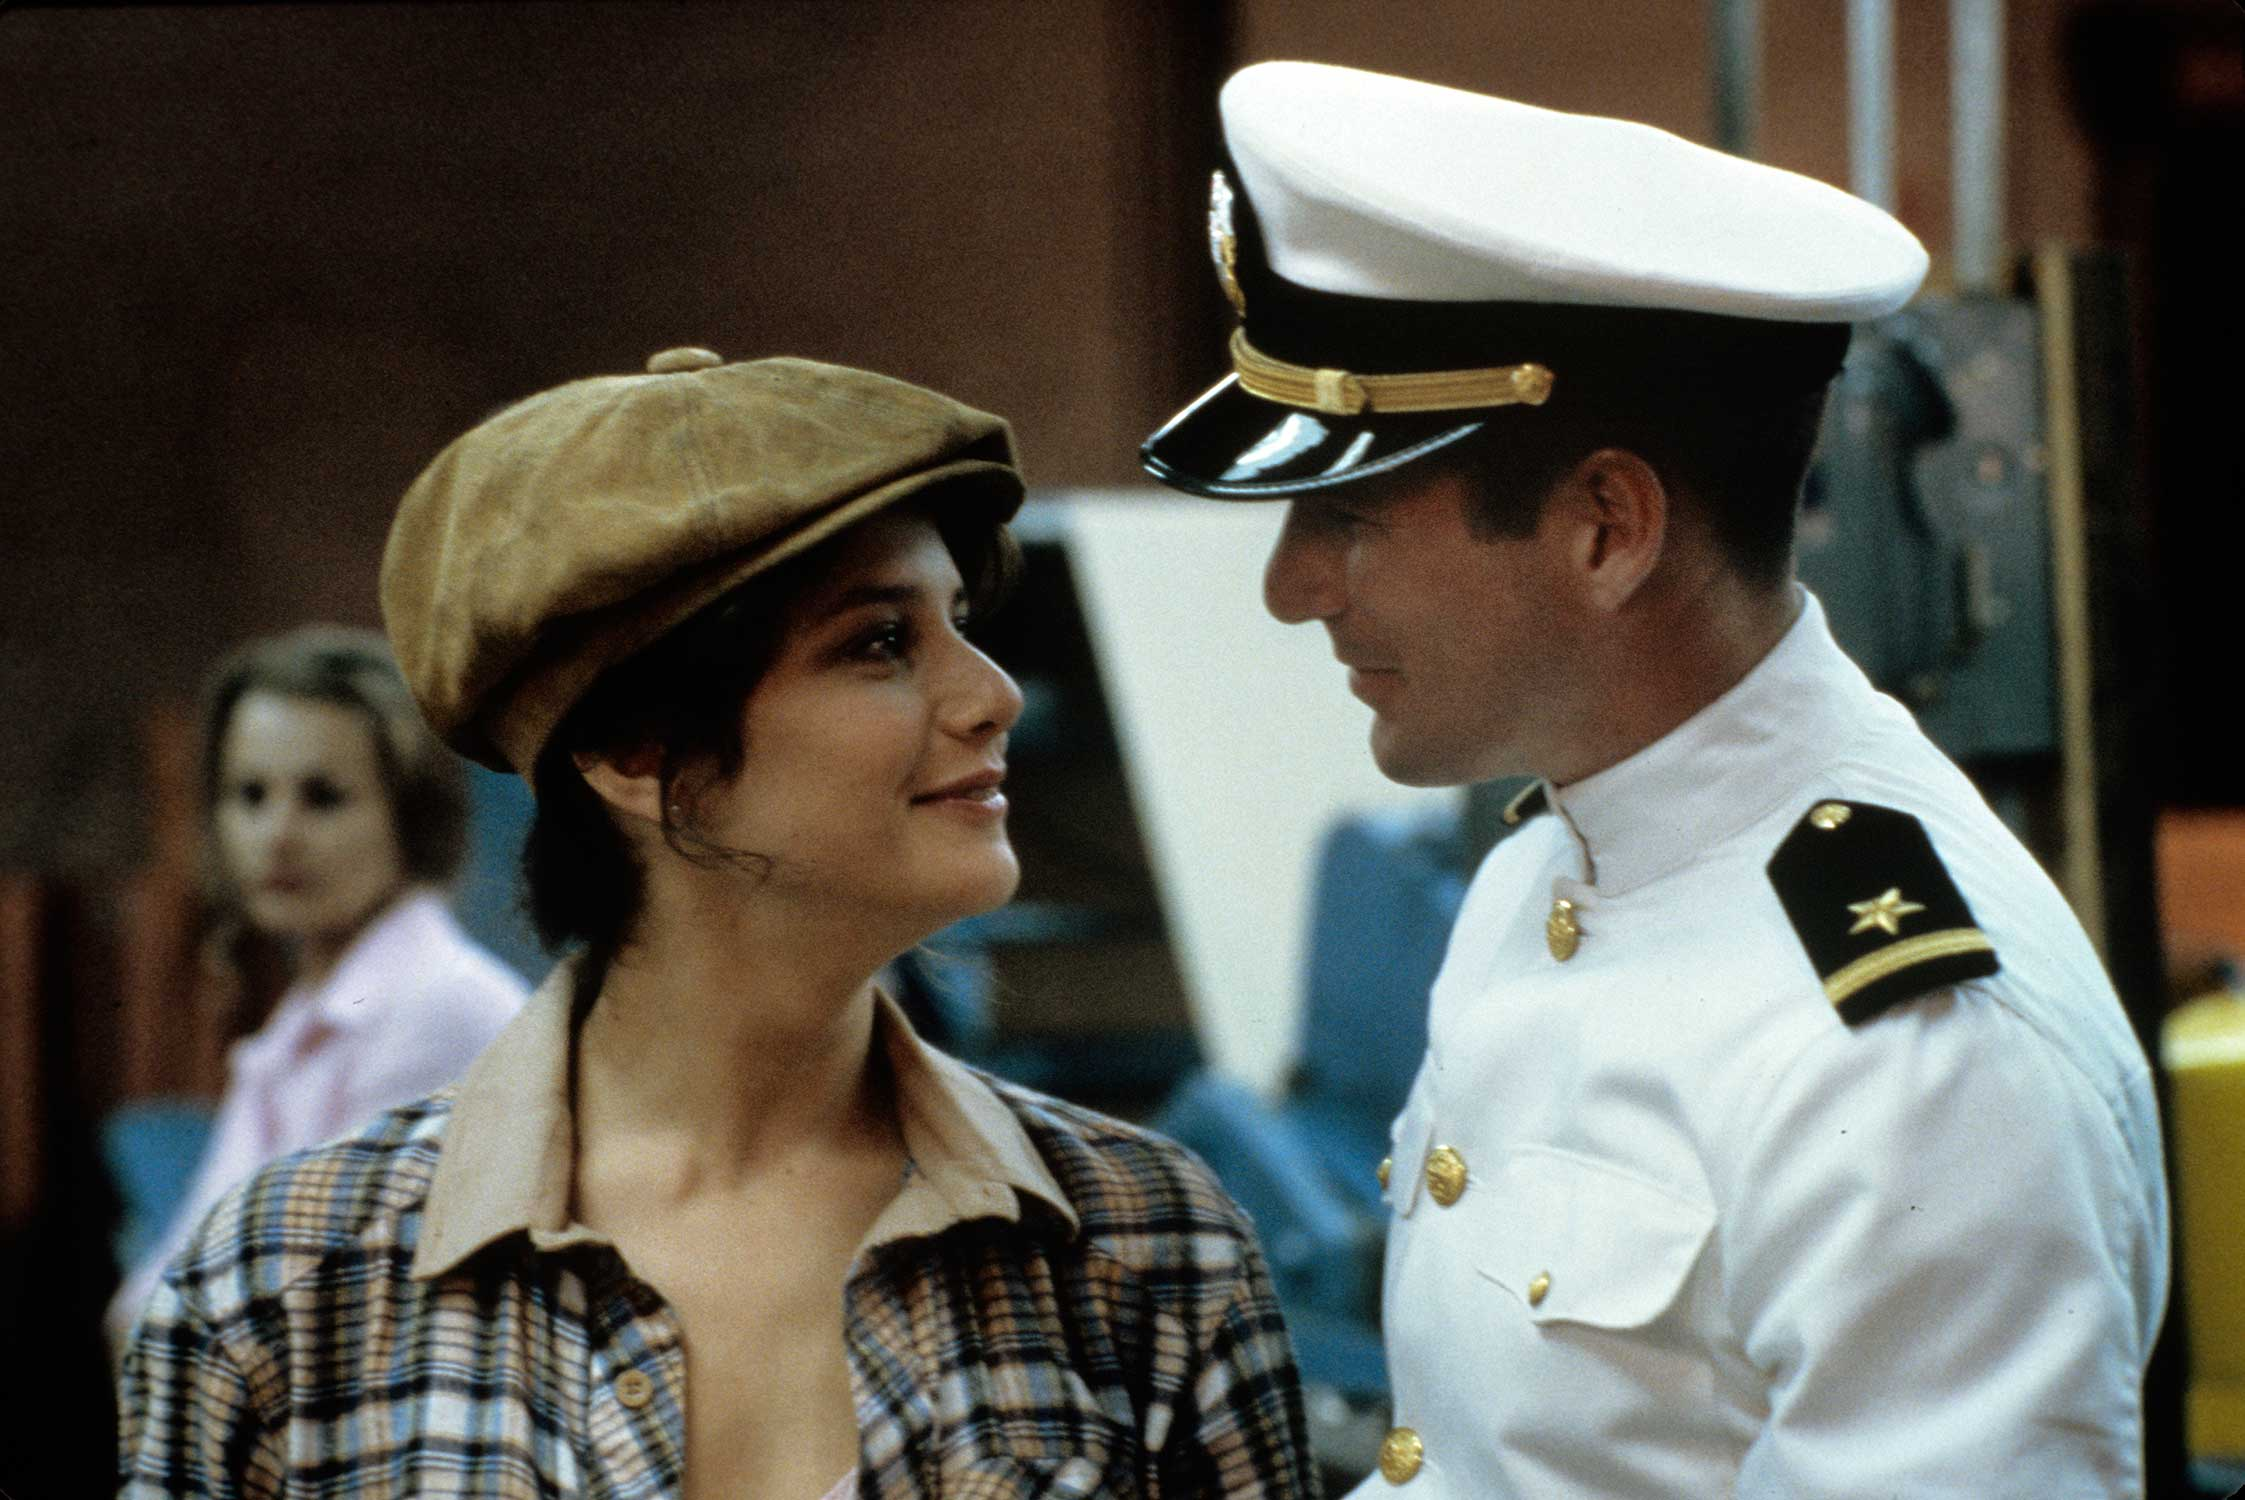 main-poster_-debra-winger_and_richard-gere_in_an-officer-and-a-gentleman_1982.jpg